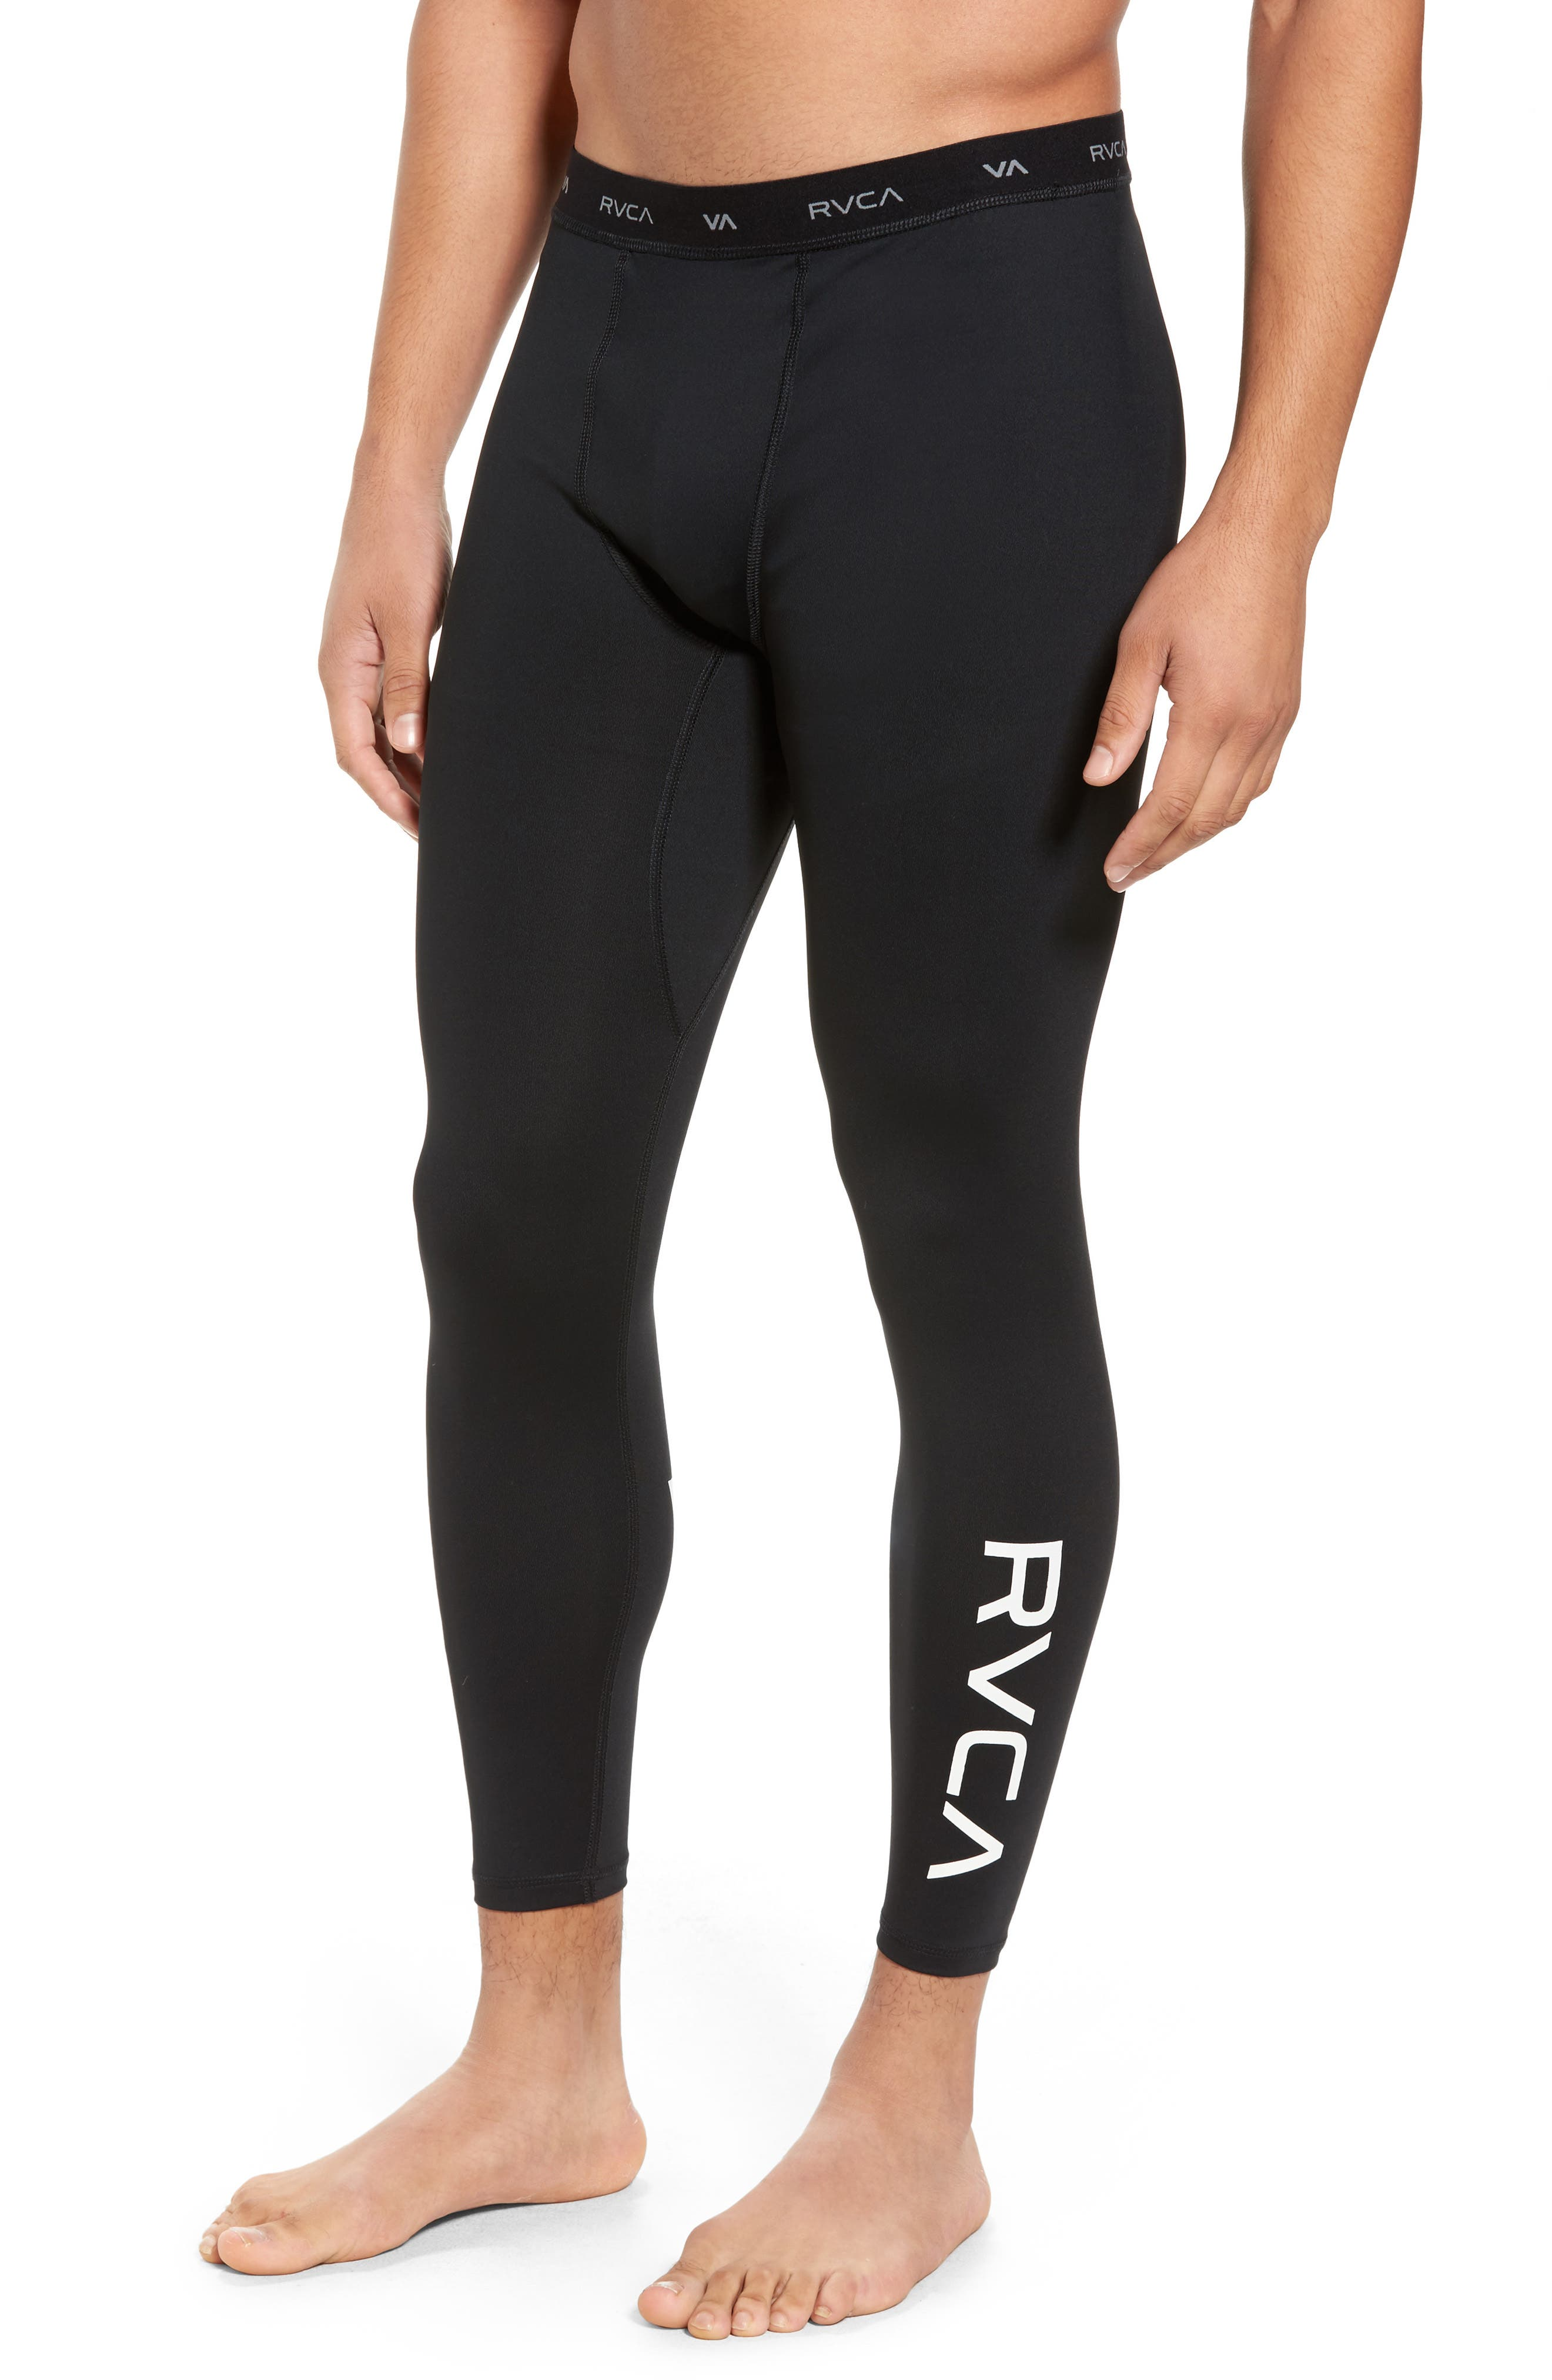 VA Sport Compression Pants,                         Main,                         color, Black